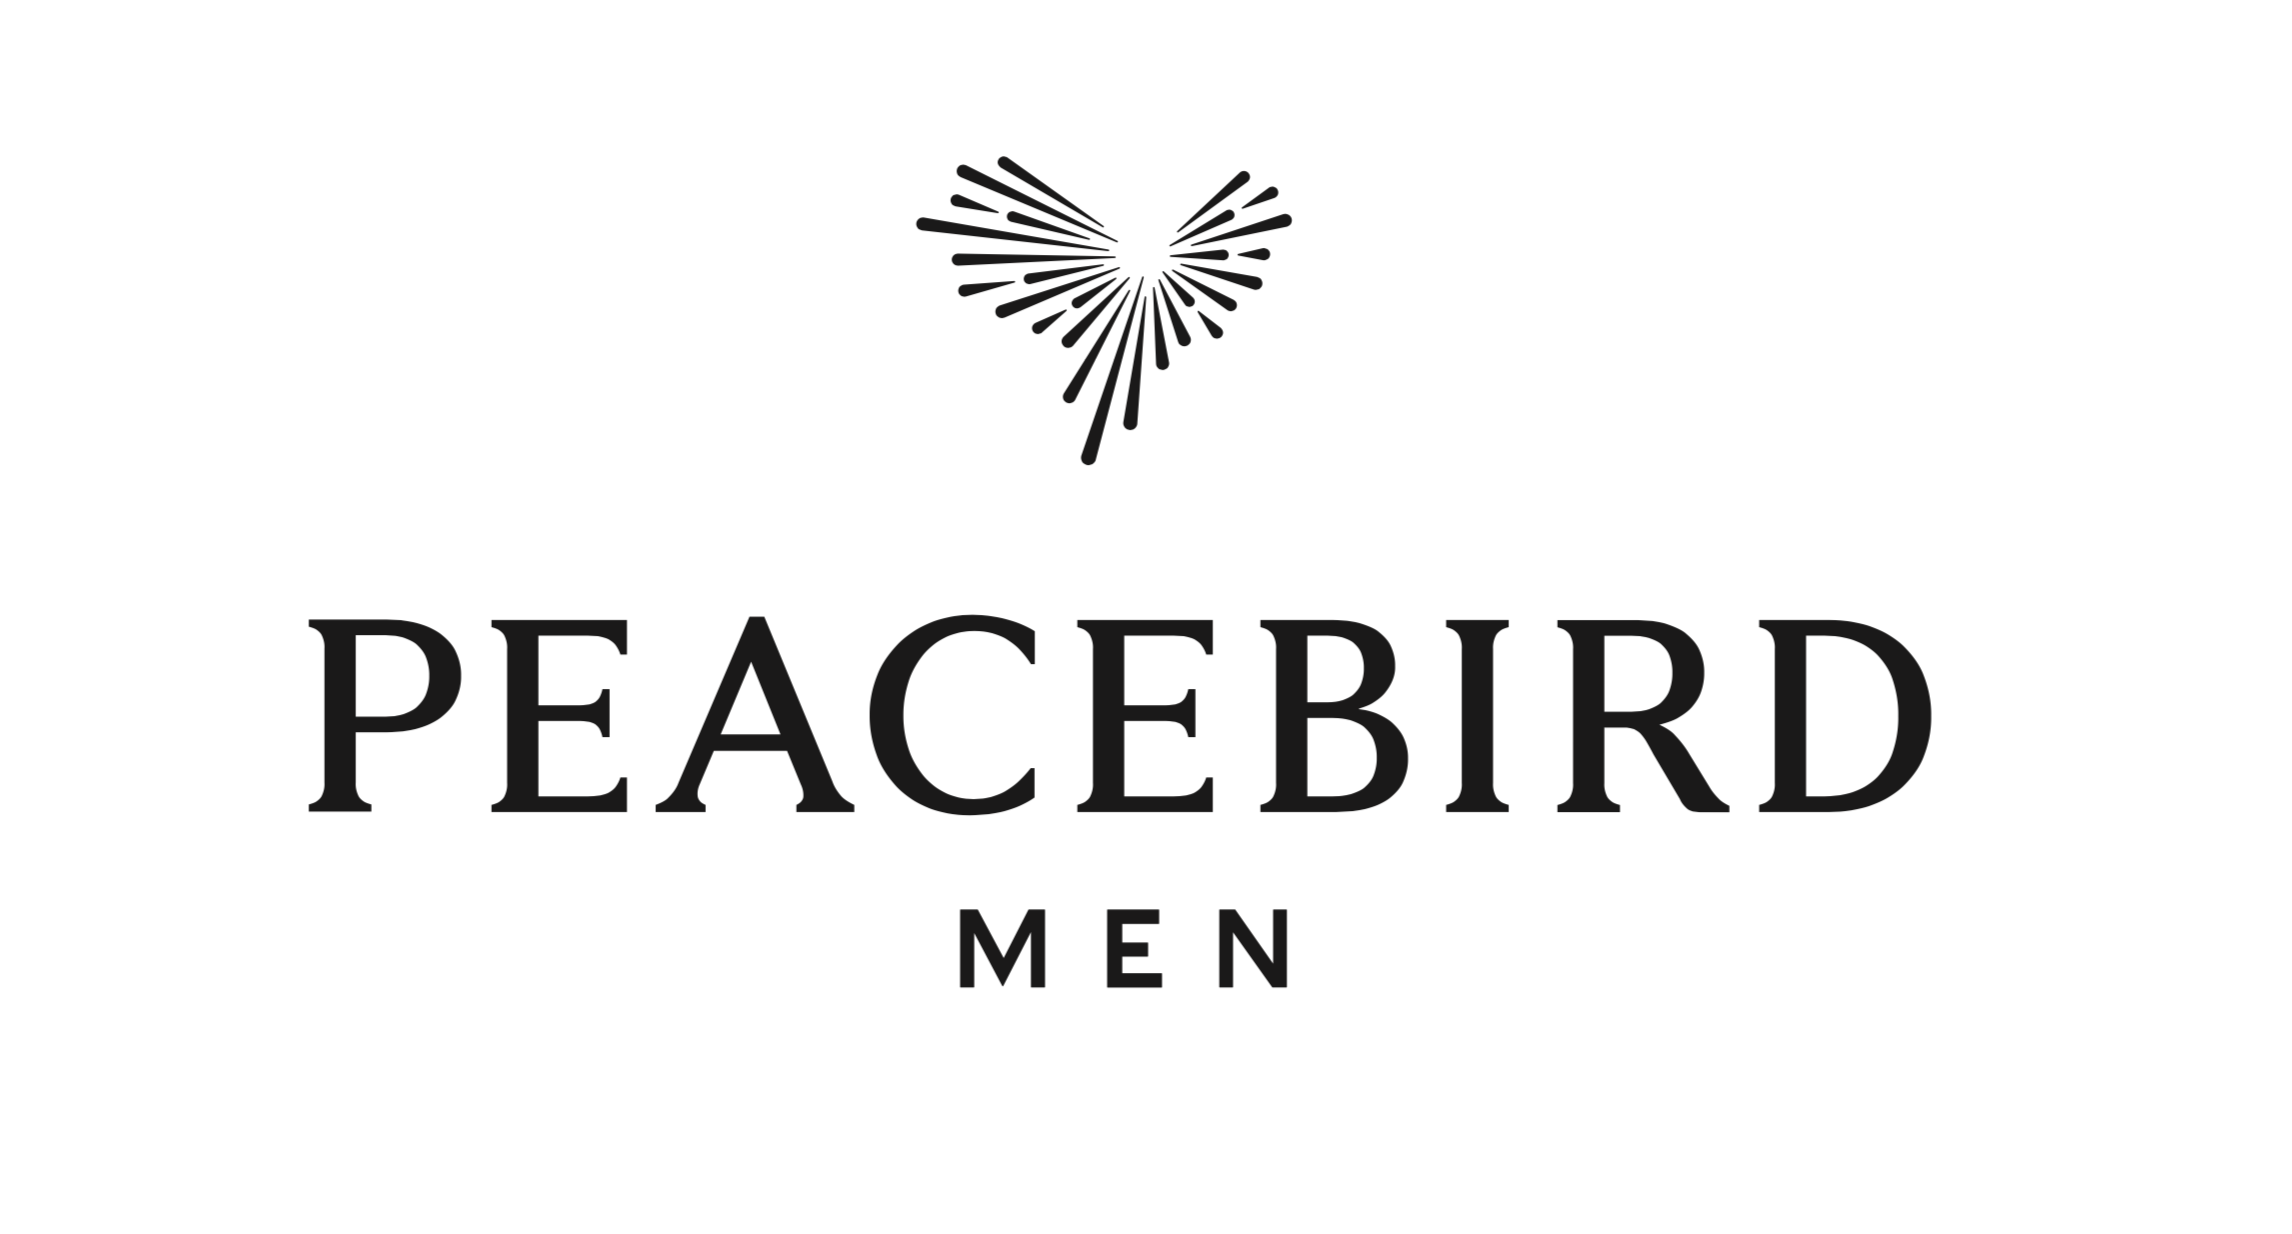 PEACEBIRD MEN太平鸟男装.png